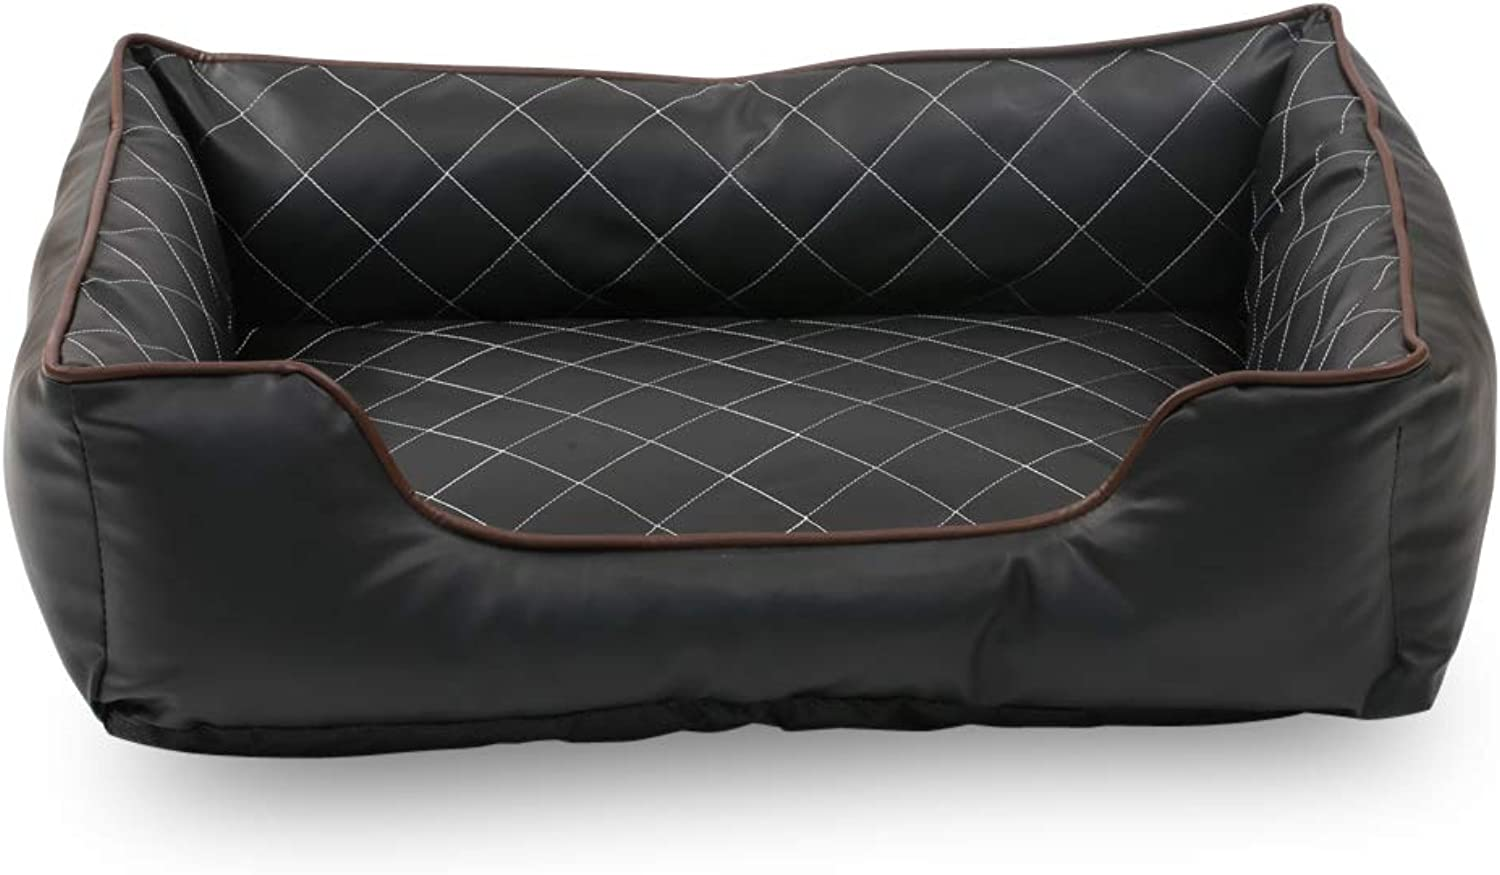 Long Rich Luxury All Sides Faux Leather Rectangle Pet Bed, by Happycare Texties